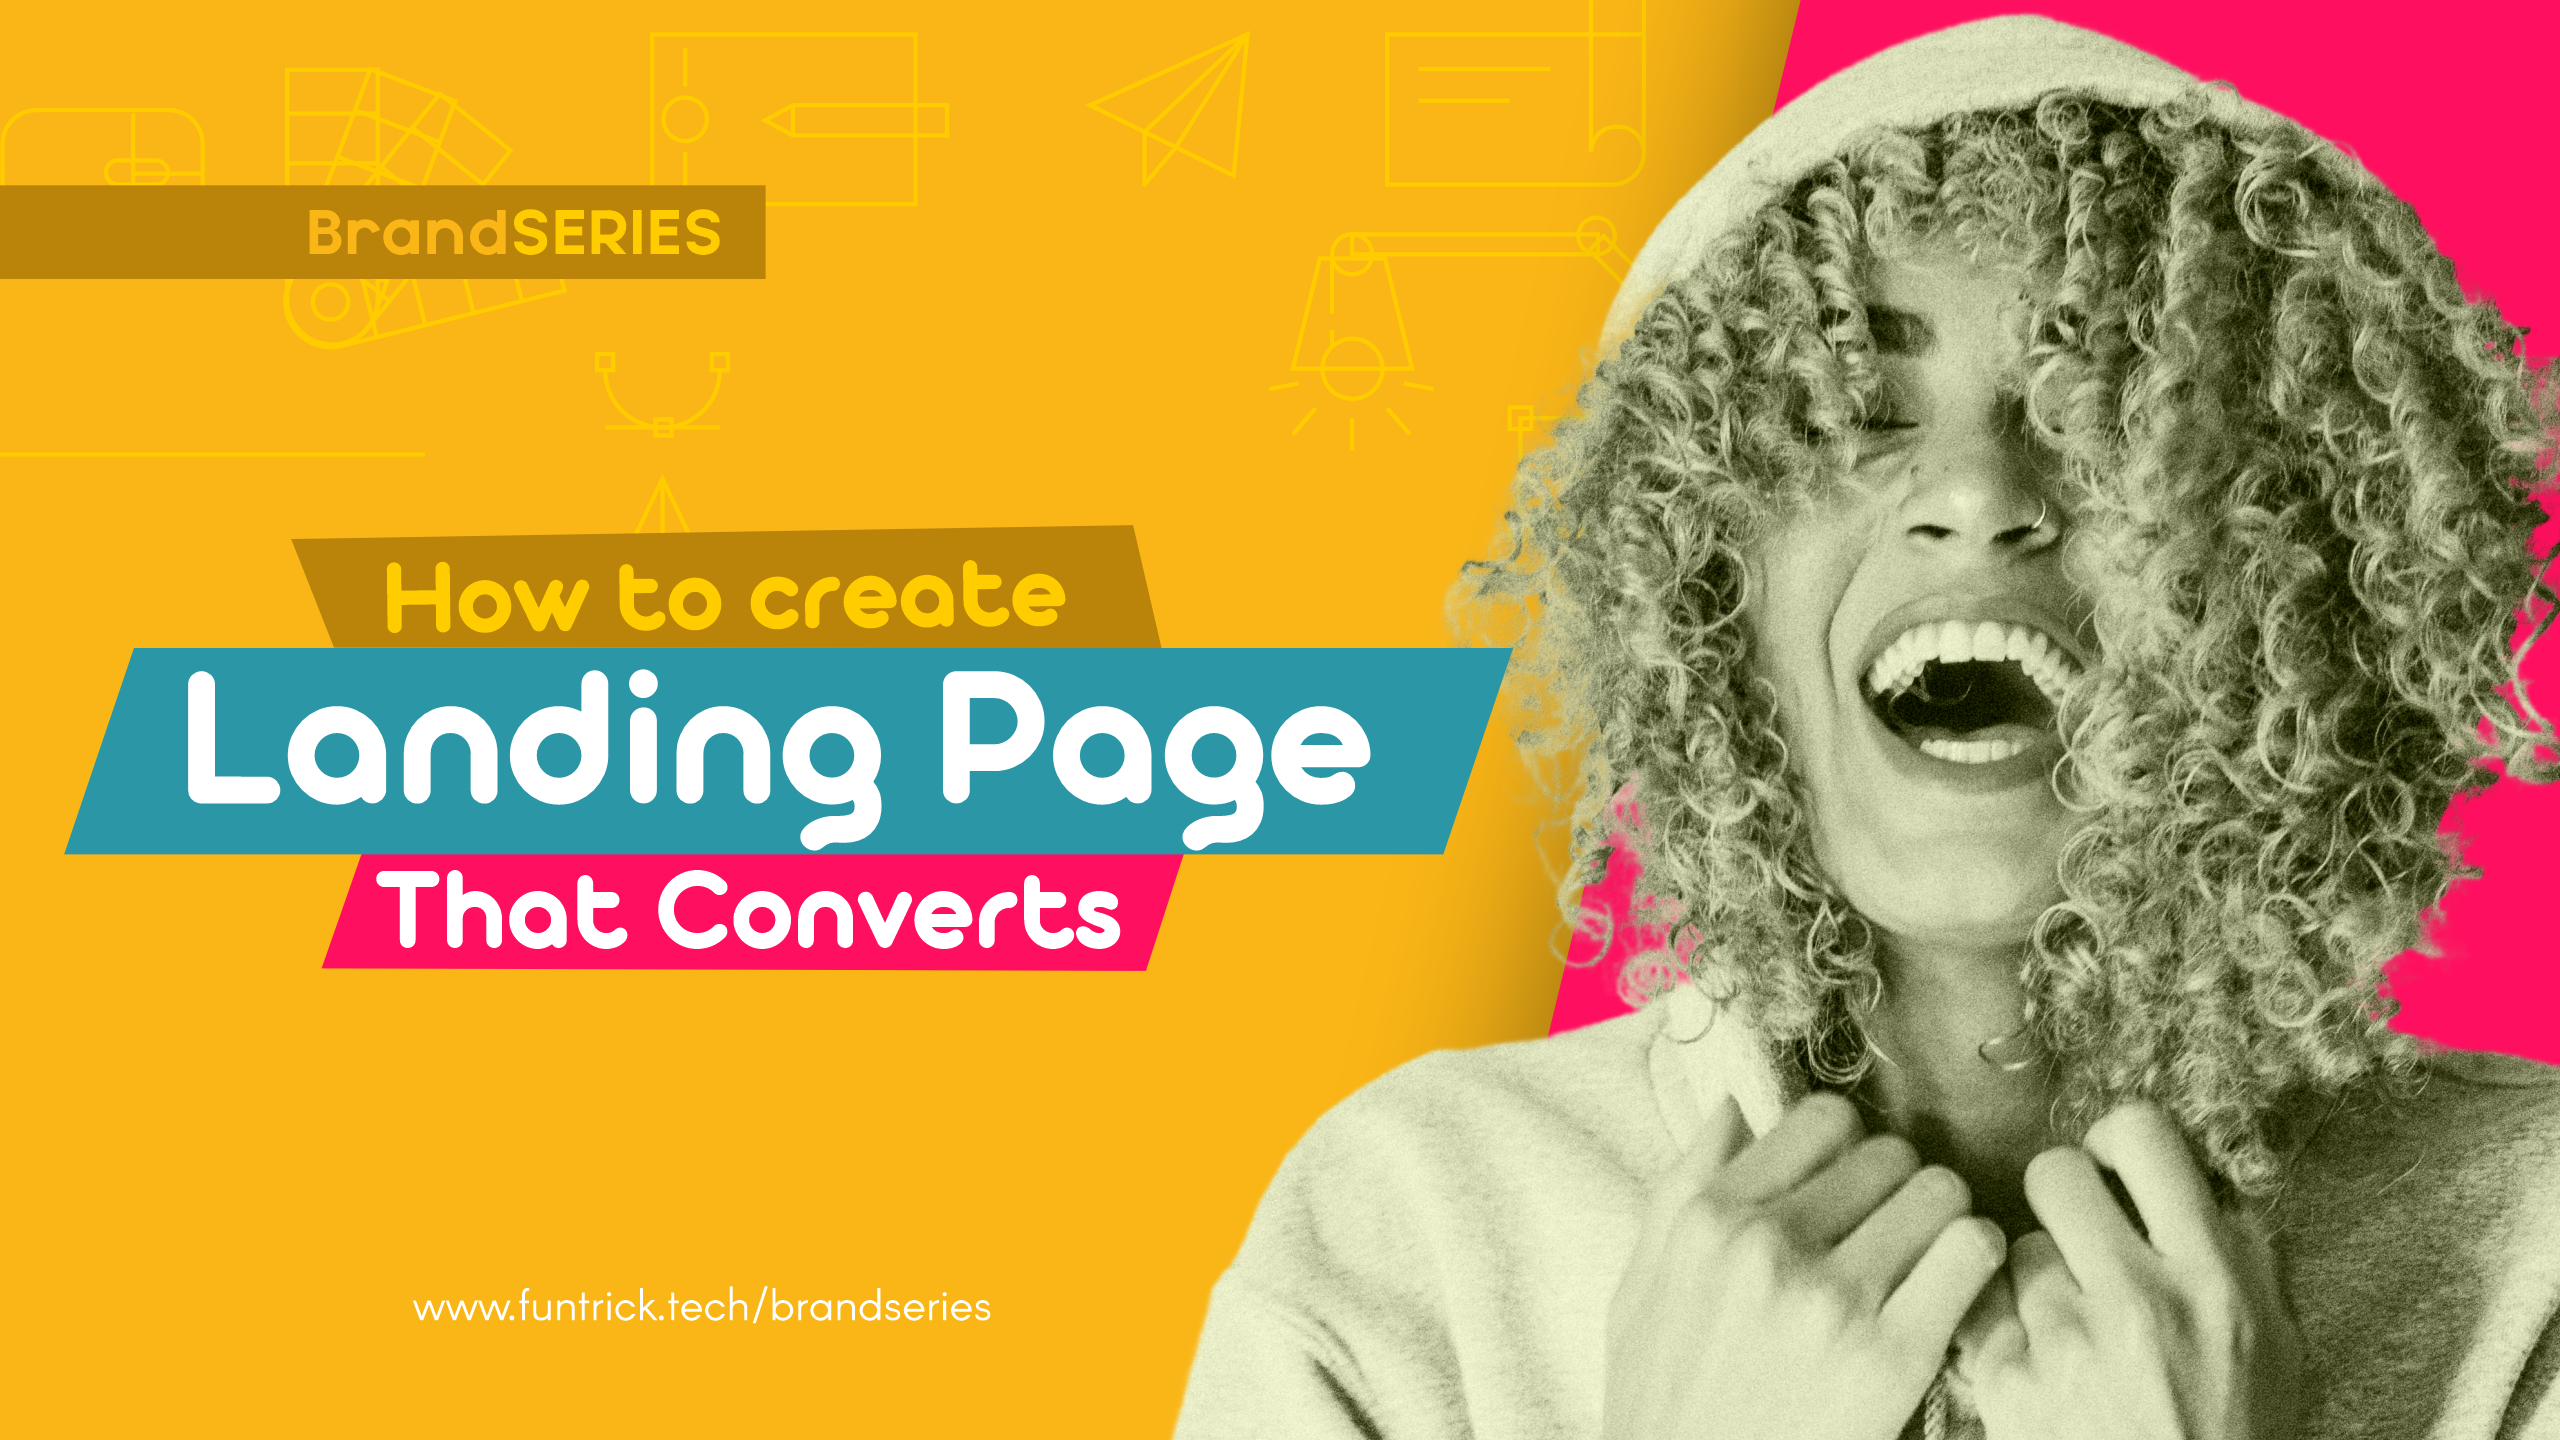 How To Create Landing page That Converts